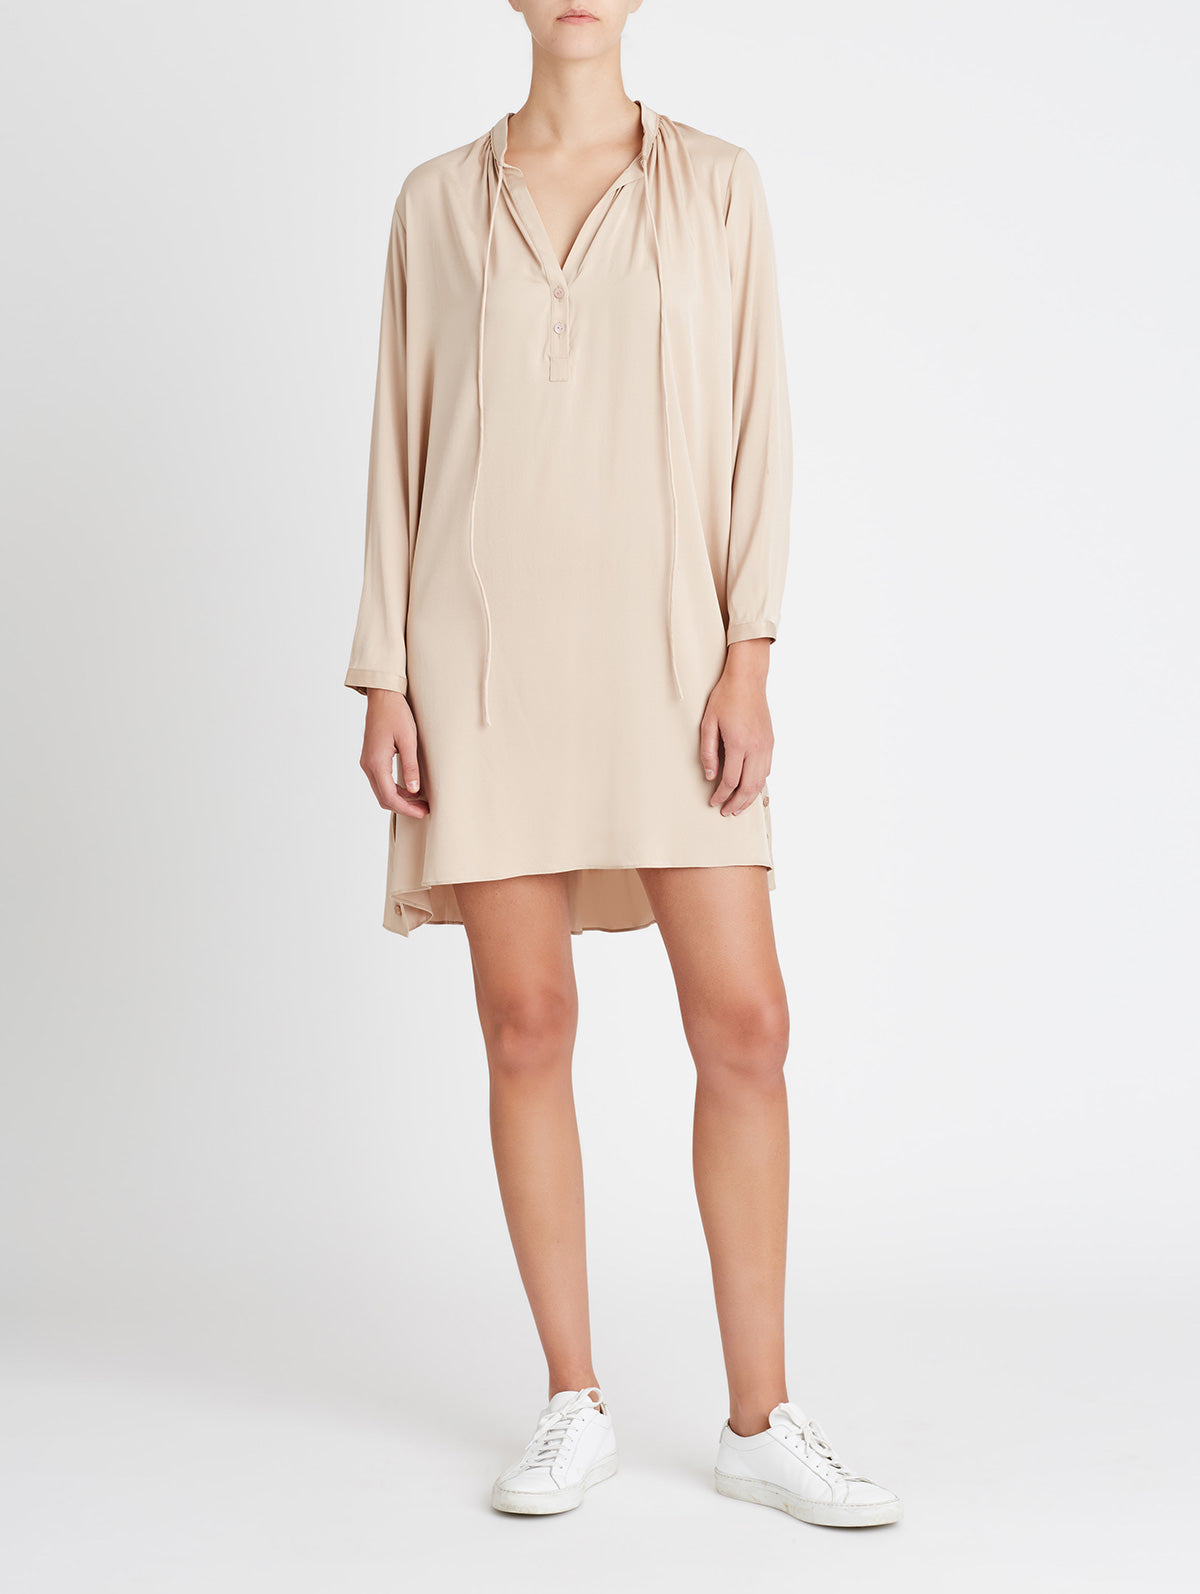 TIE NECK TUNIC DRESS